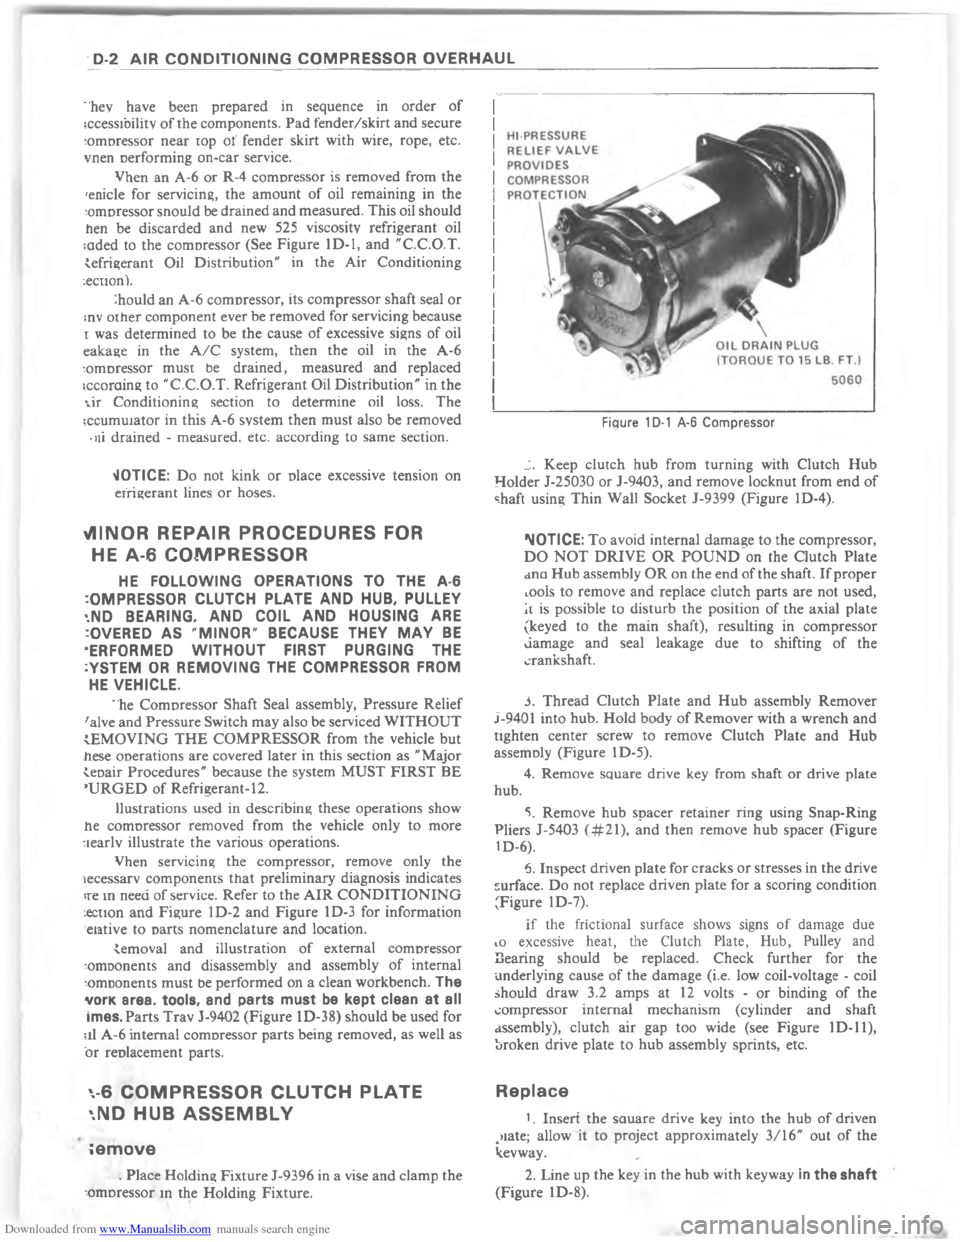 CHEVROLET MALIBU 1980 4.G Workshop Manual, Page 8